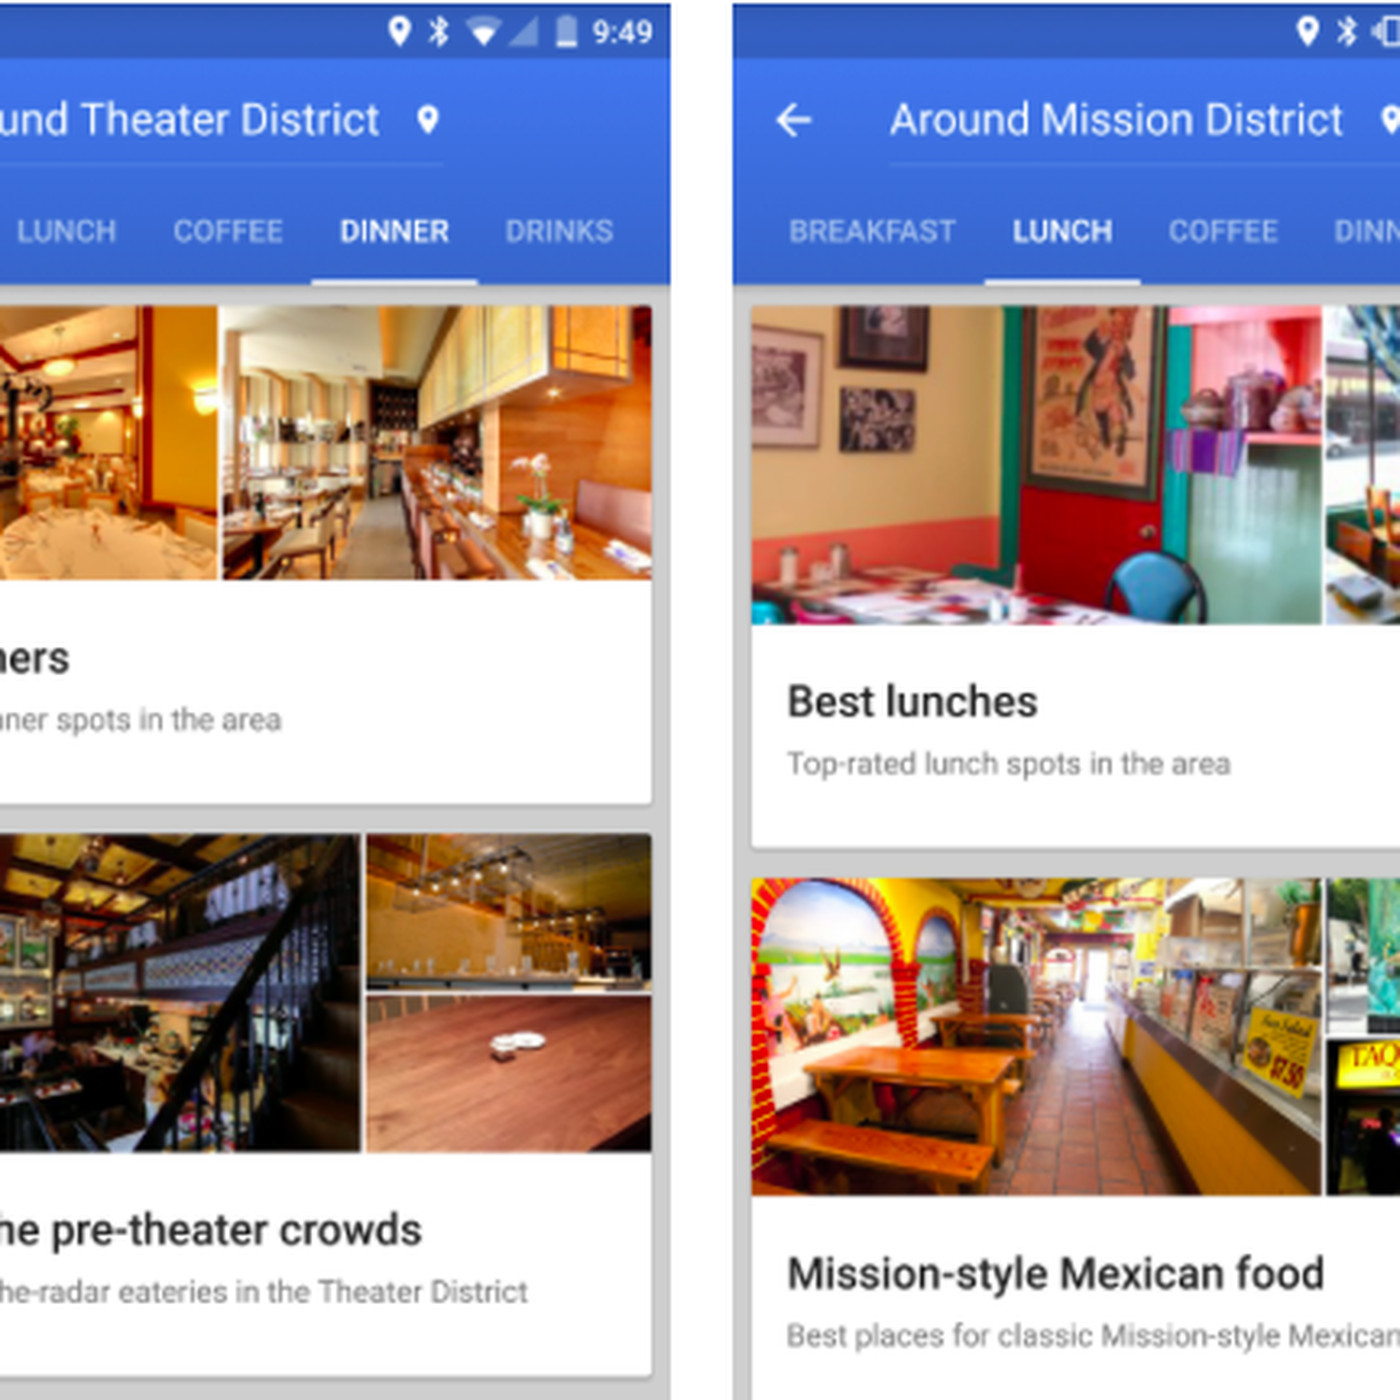 Google Maps Wants to Give You Restaurant Recommendations - Eater